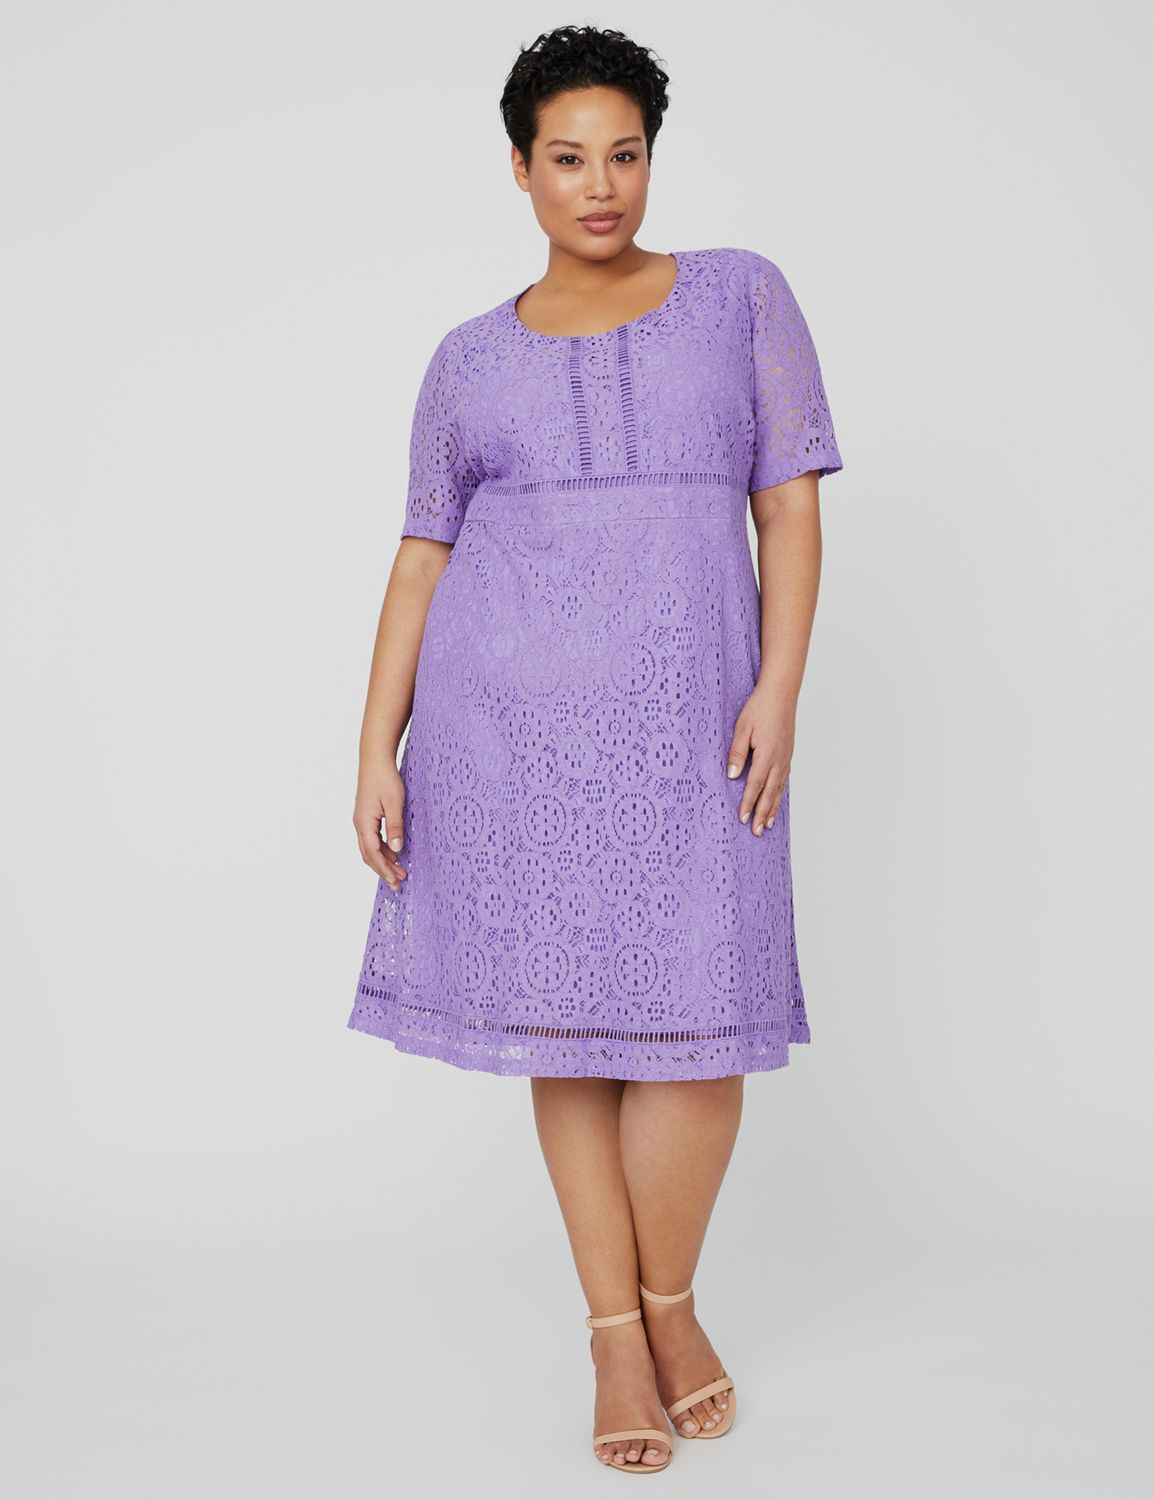 Violet Lace Dress 1091036 A Line Lace Dress with Trim MP-300100570